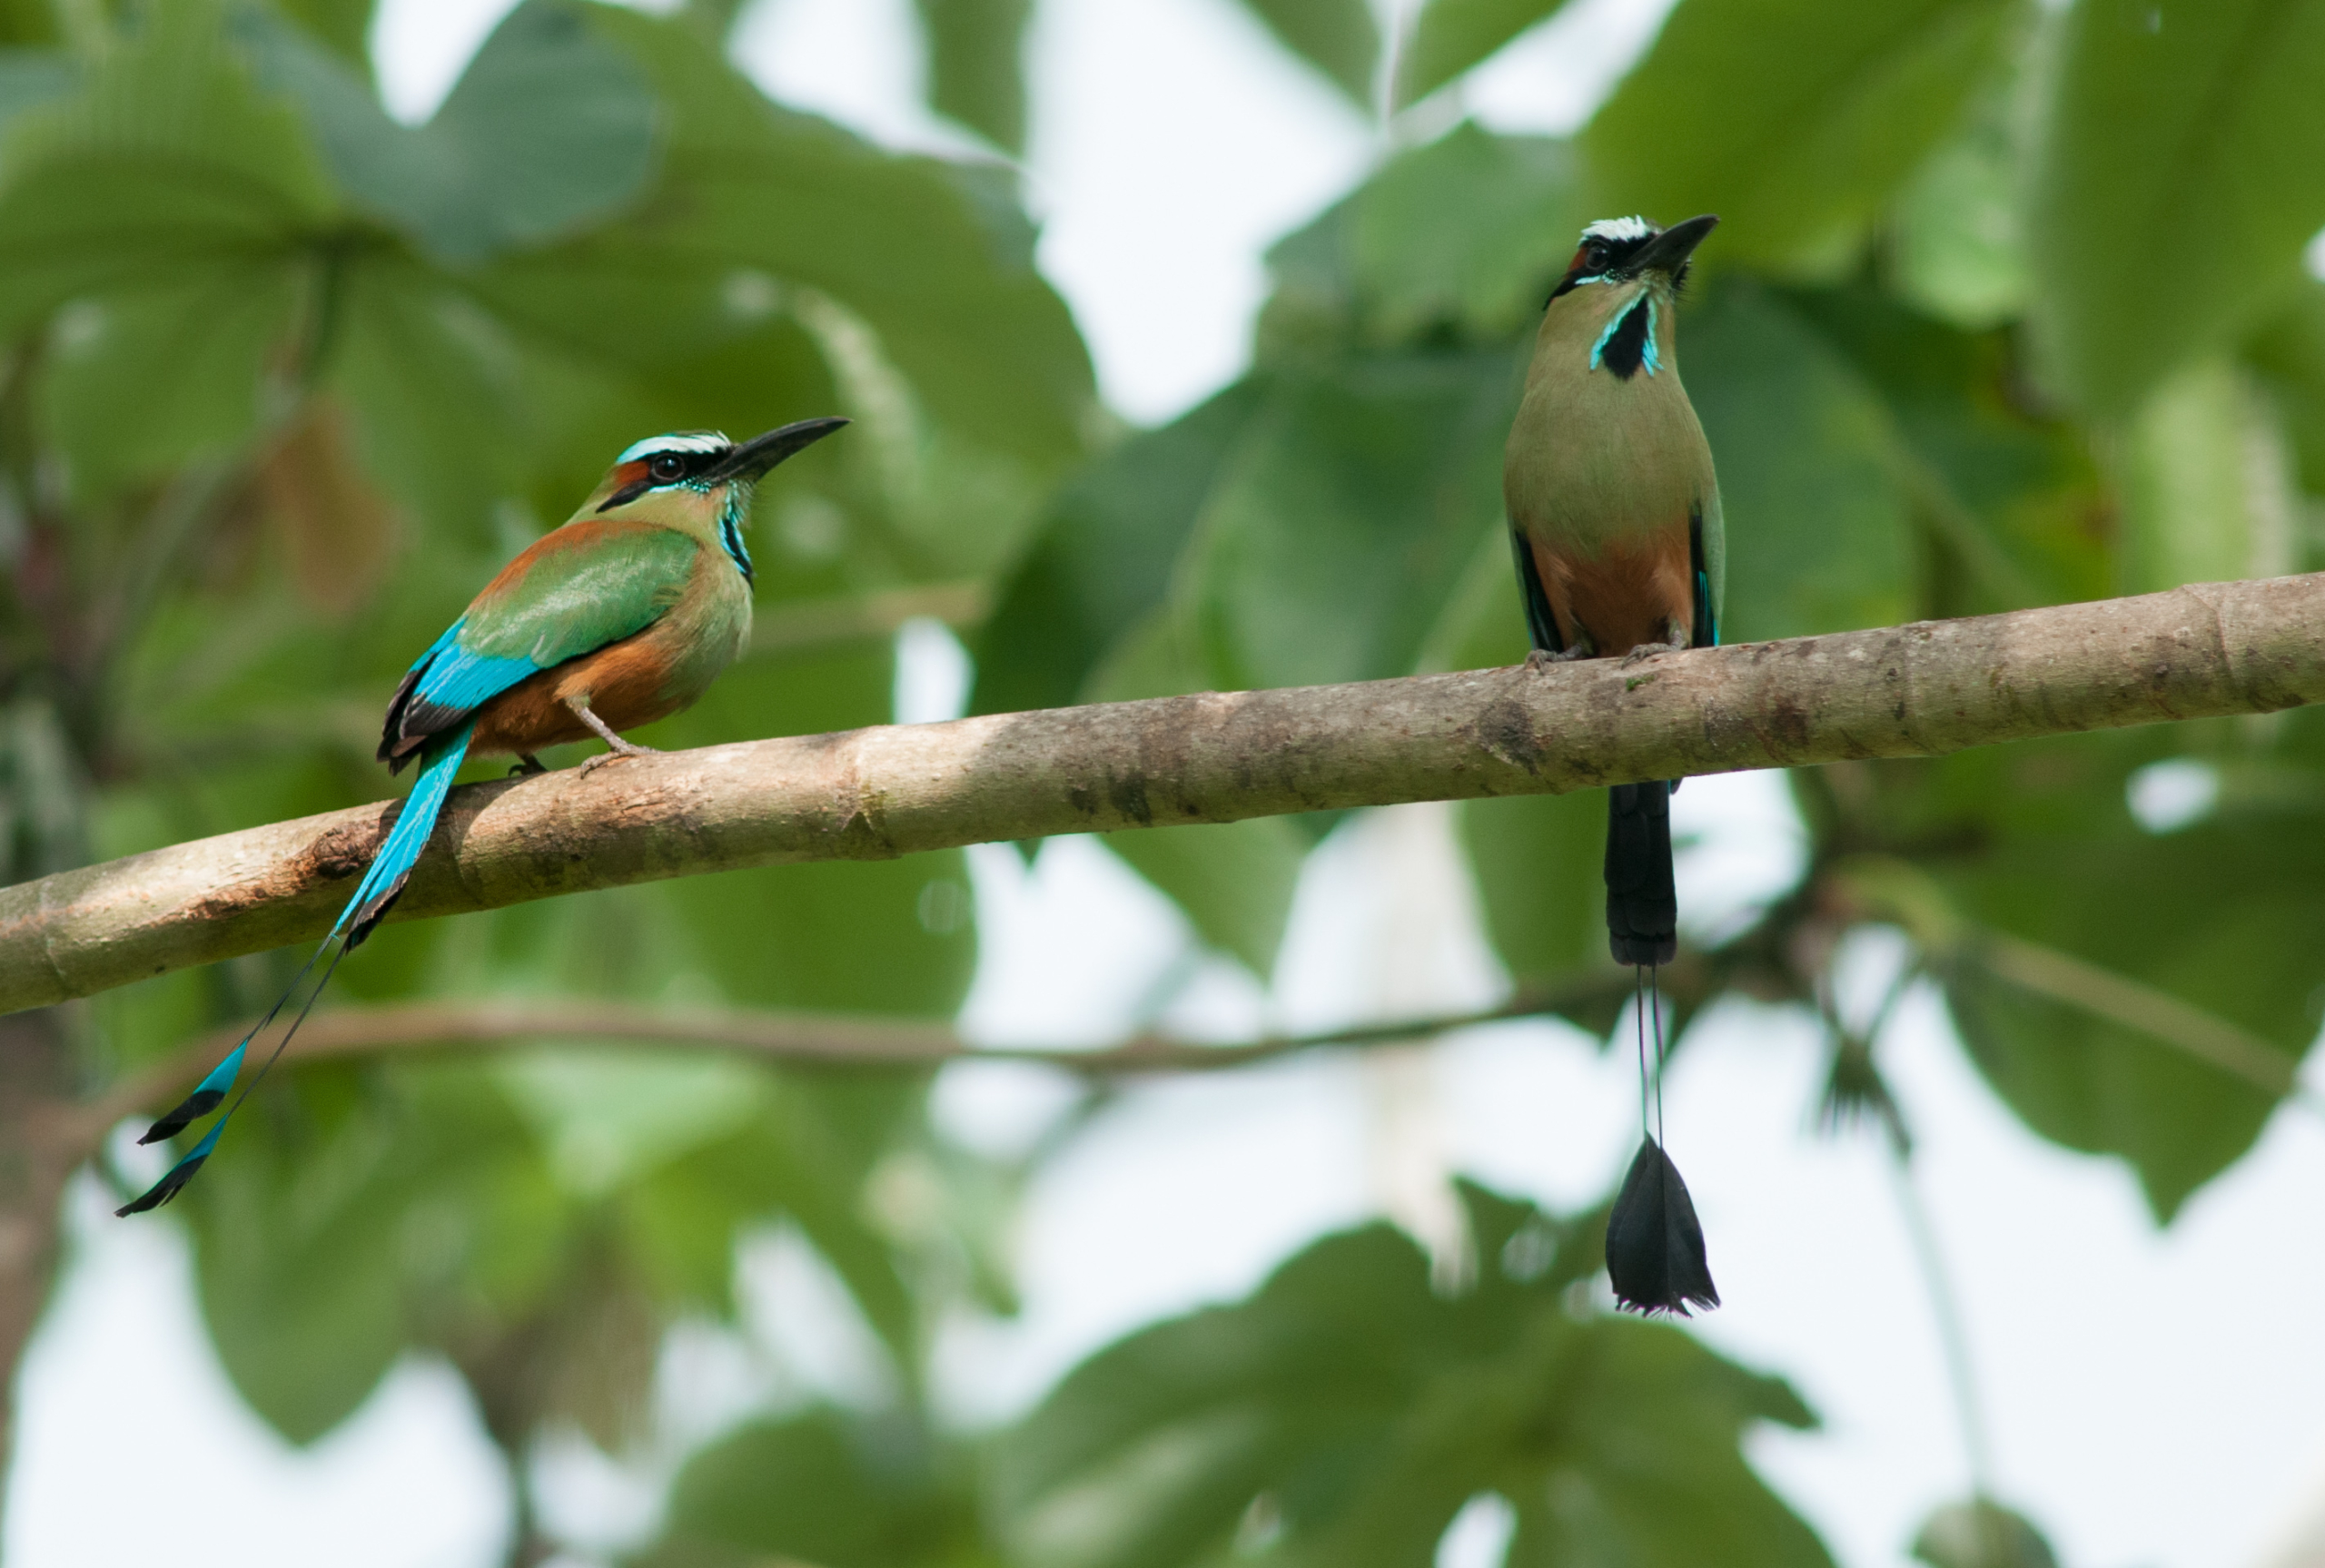 Turquoise browed motmots